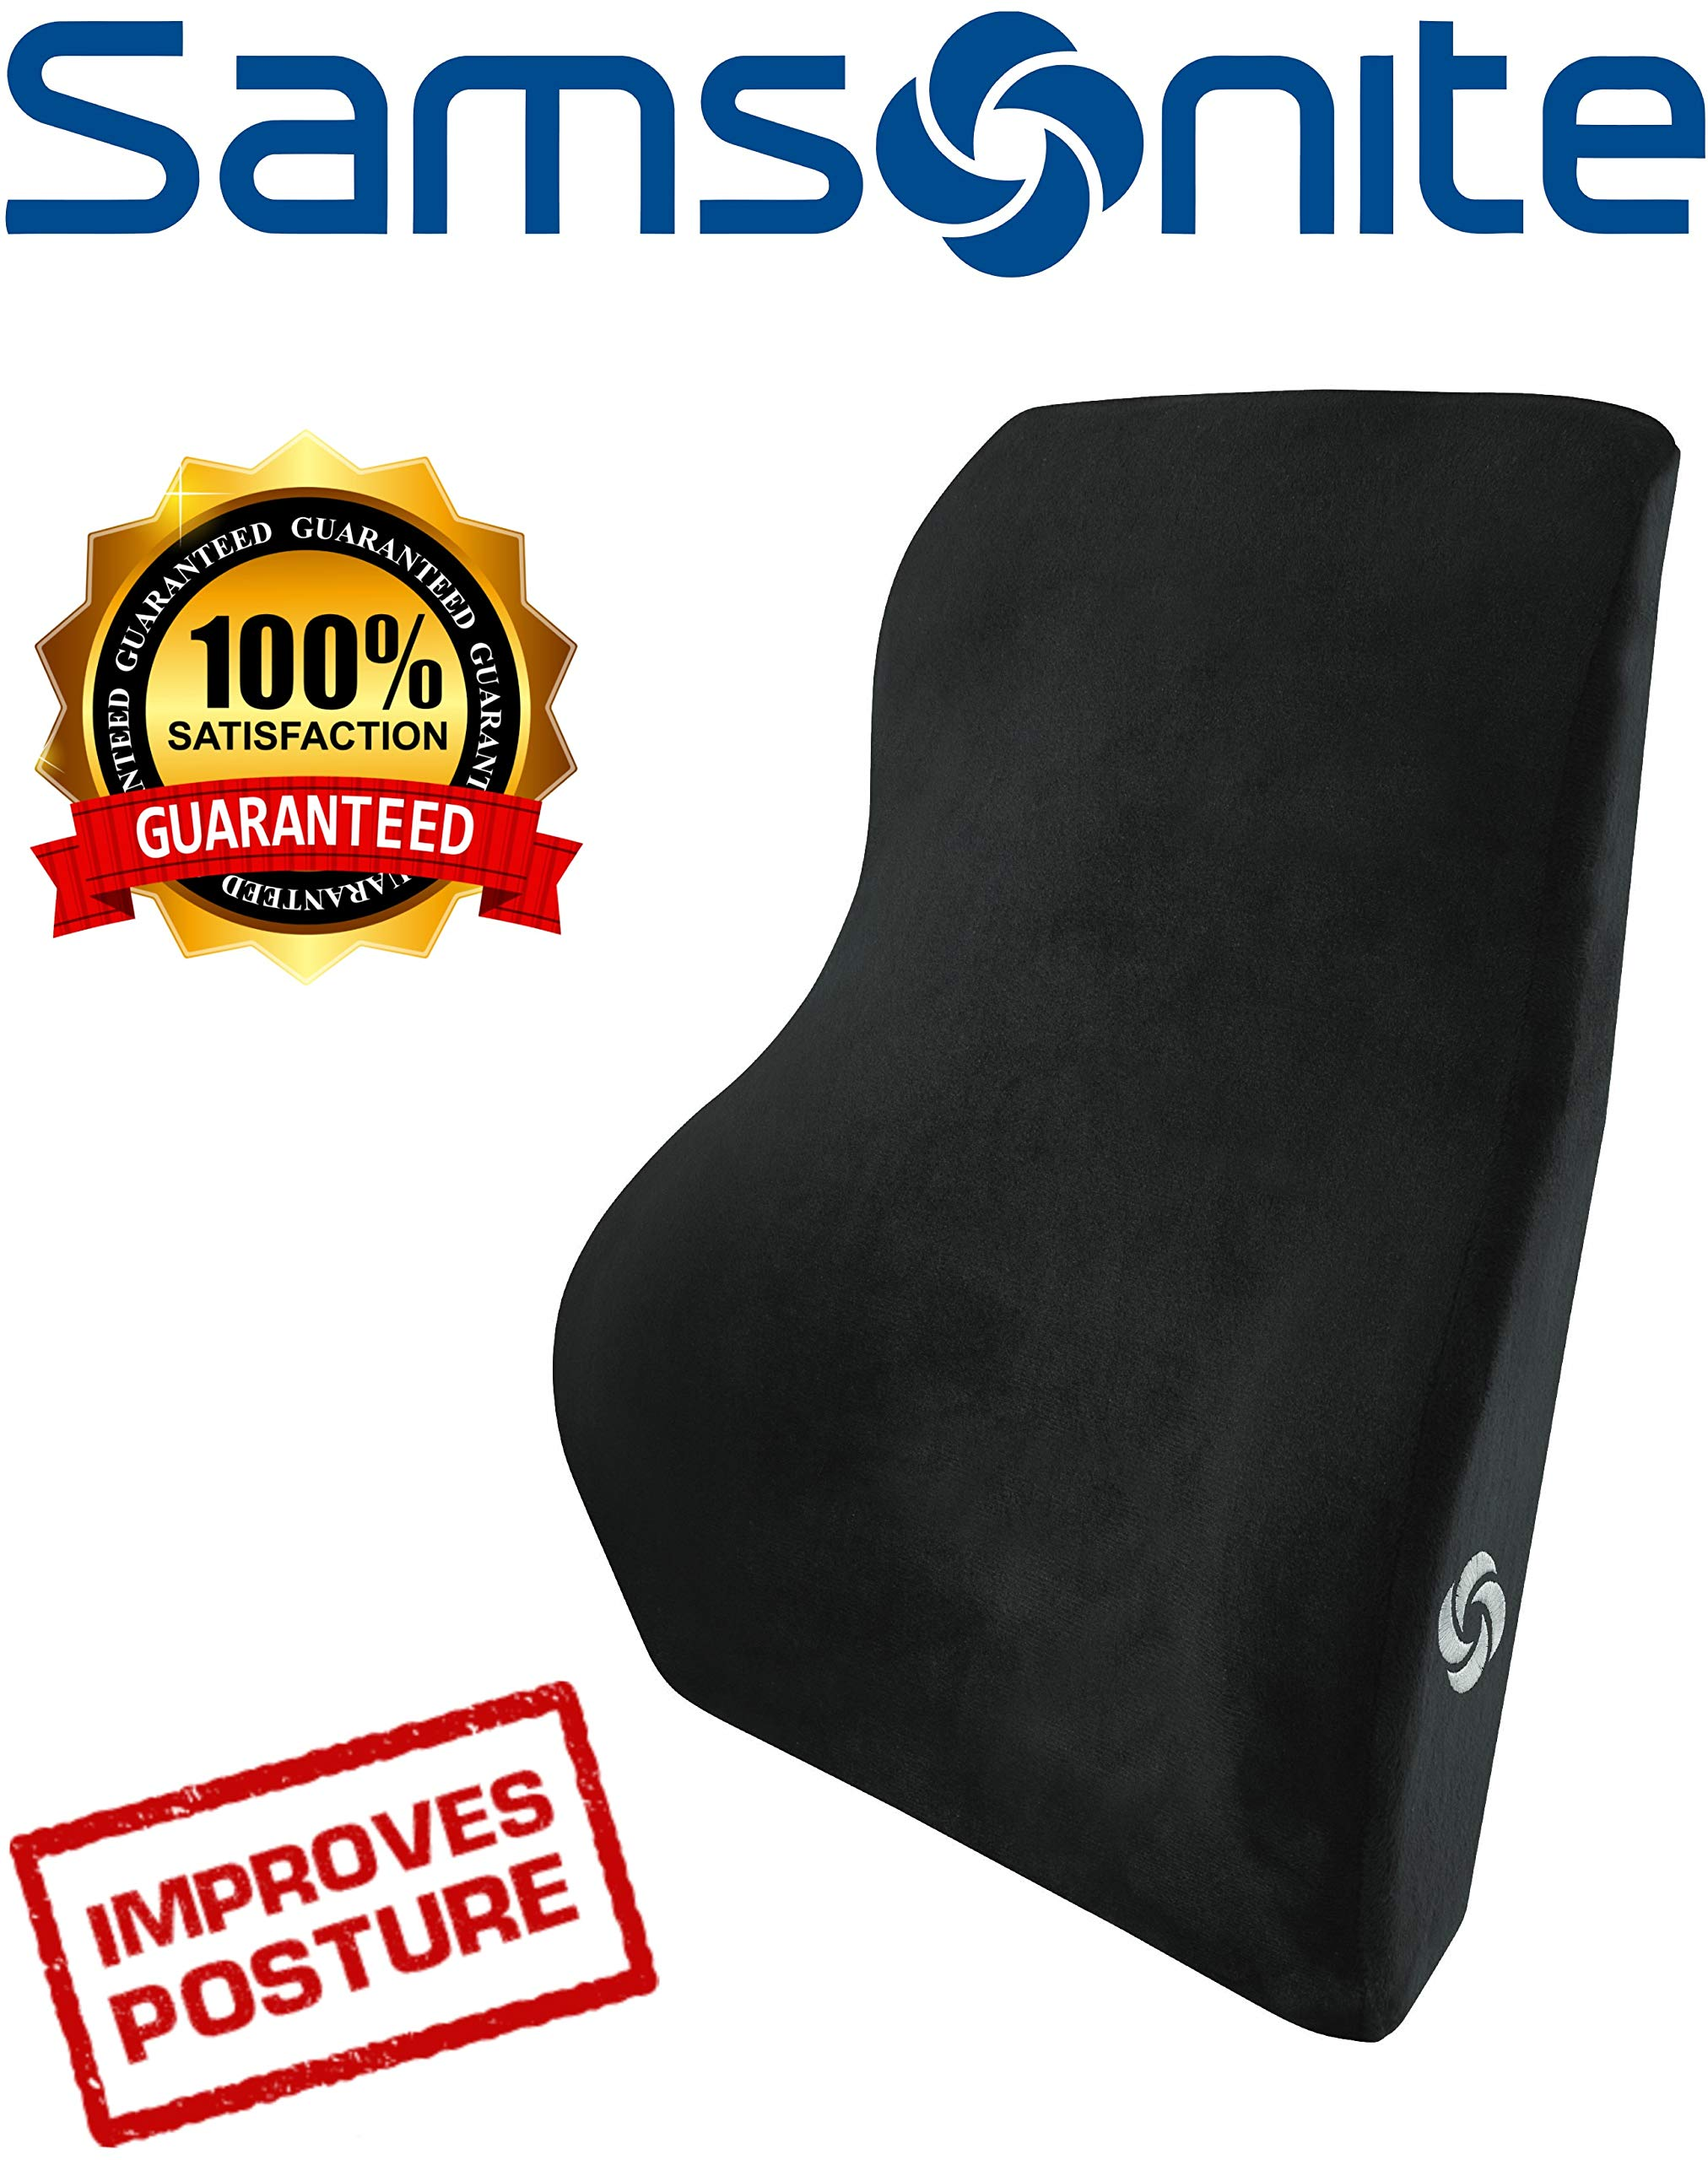 Samsonite SA5447 Full Size Lumbar Support with 100% Pure Memory Foam  Helps Relieve Lower Back Pain  Fits Most Seats by Samsonite (Image #1)